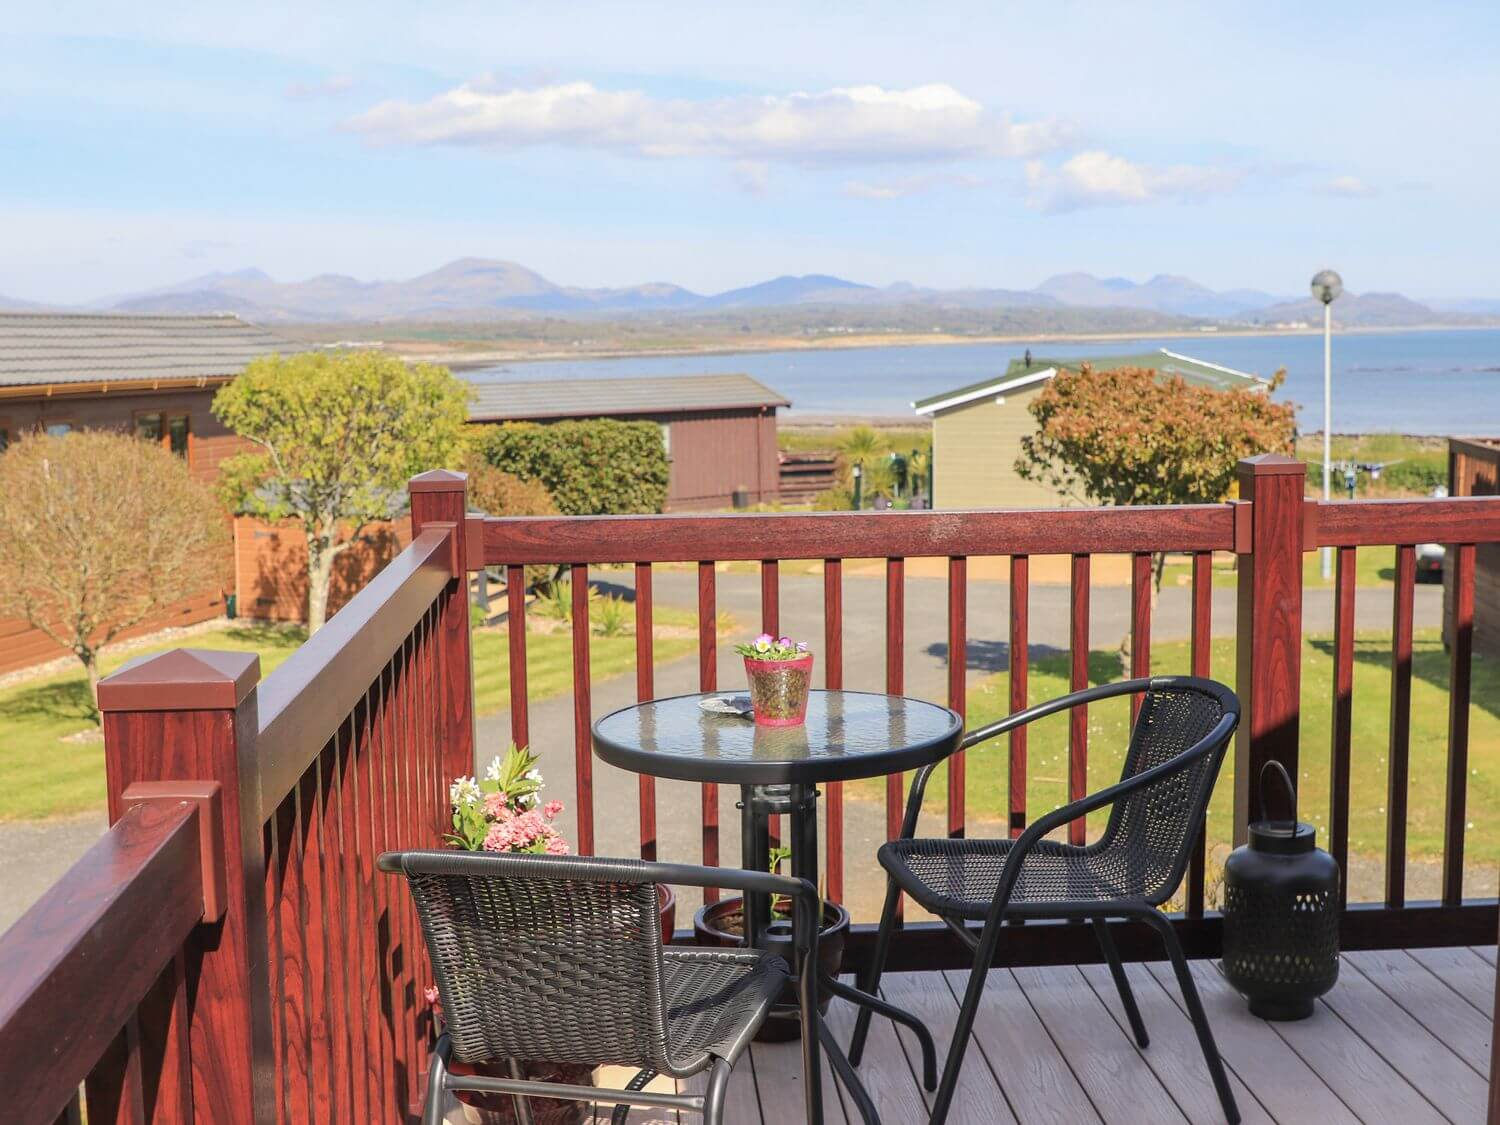 June Rose Holiday Lodge in Pwllheli, North Wales